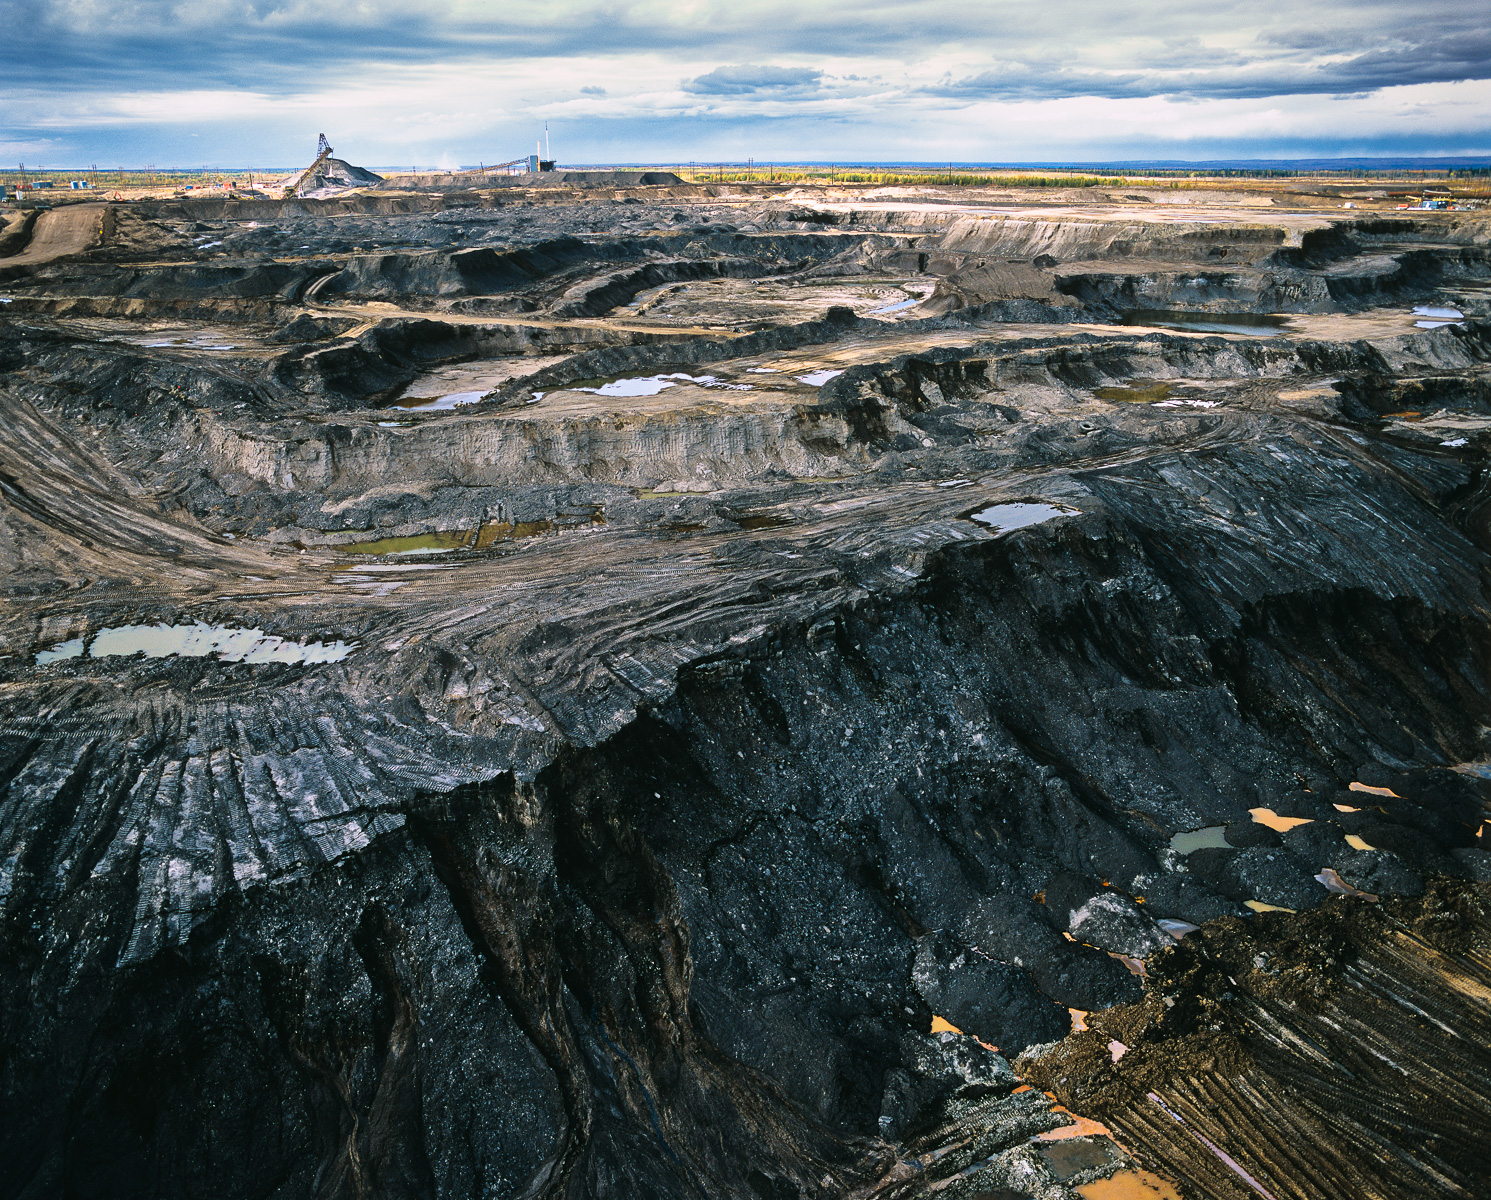 Tar Sands pit mining is done in benches or steps. These benches are each approximately 12-15 meters high. Giant shovels dig the tar sand and place it into heavy hauler trucks that range in size from 240 tons to the largest trucks, which have a 400-ton capacity.